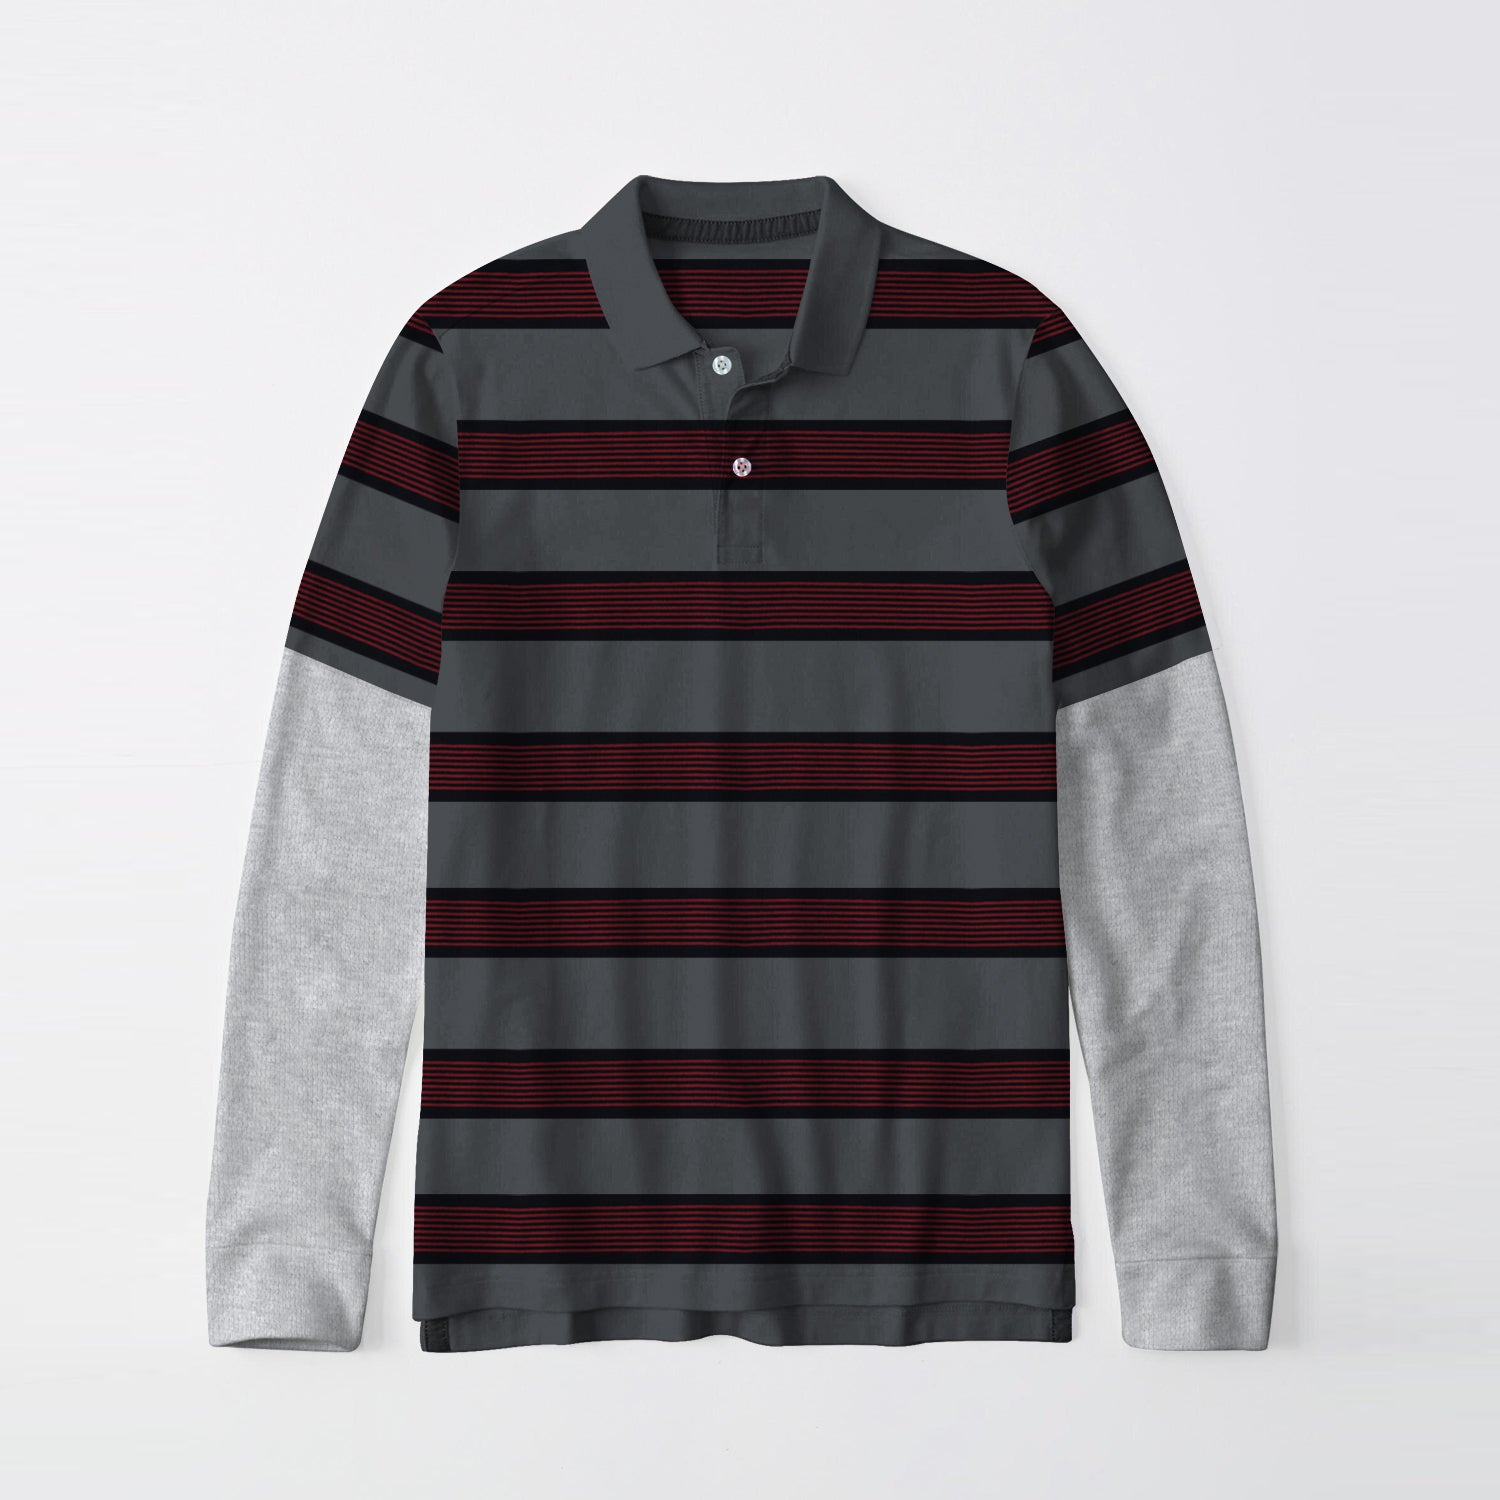 Next Single Jersey Long Sleeve Polo Shirt For Men-Dark Grey with Black & Red Stripe-BE9401